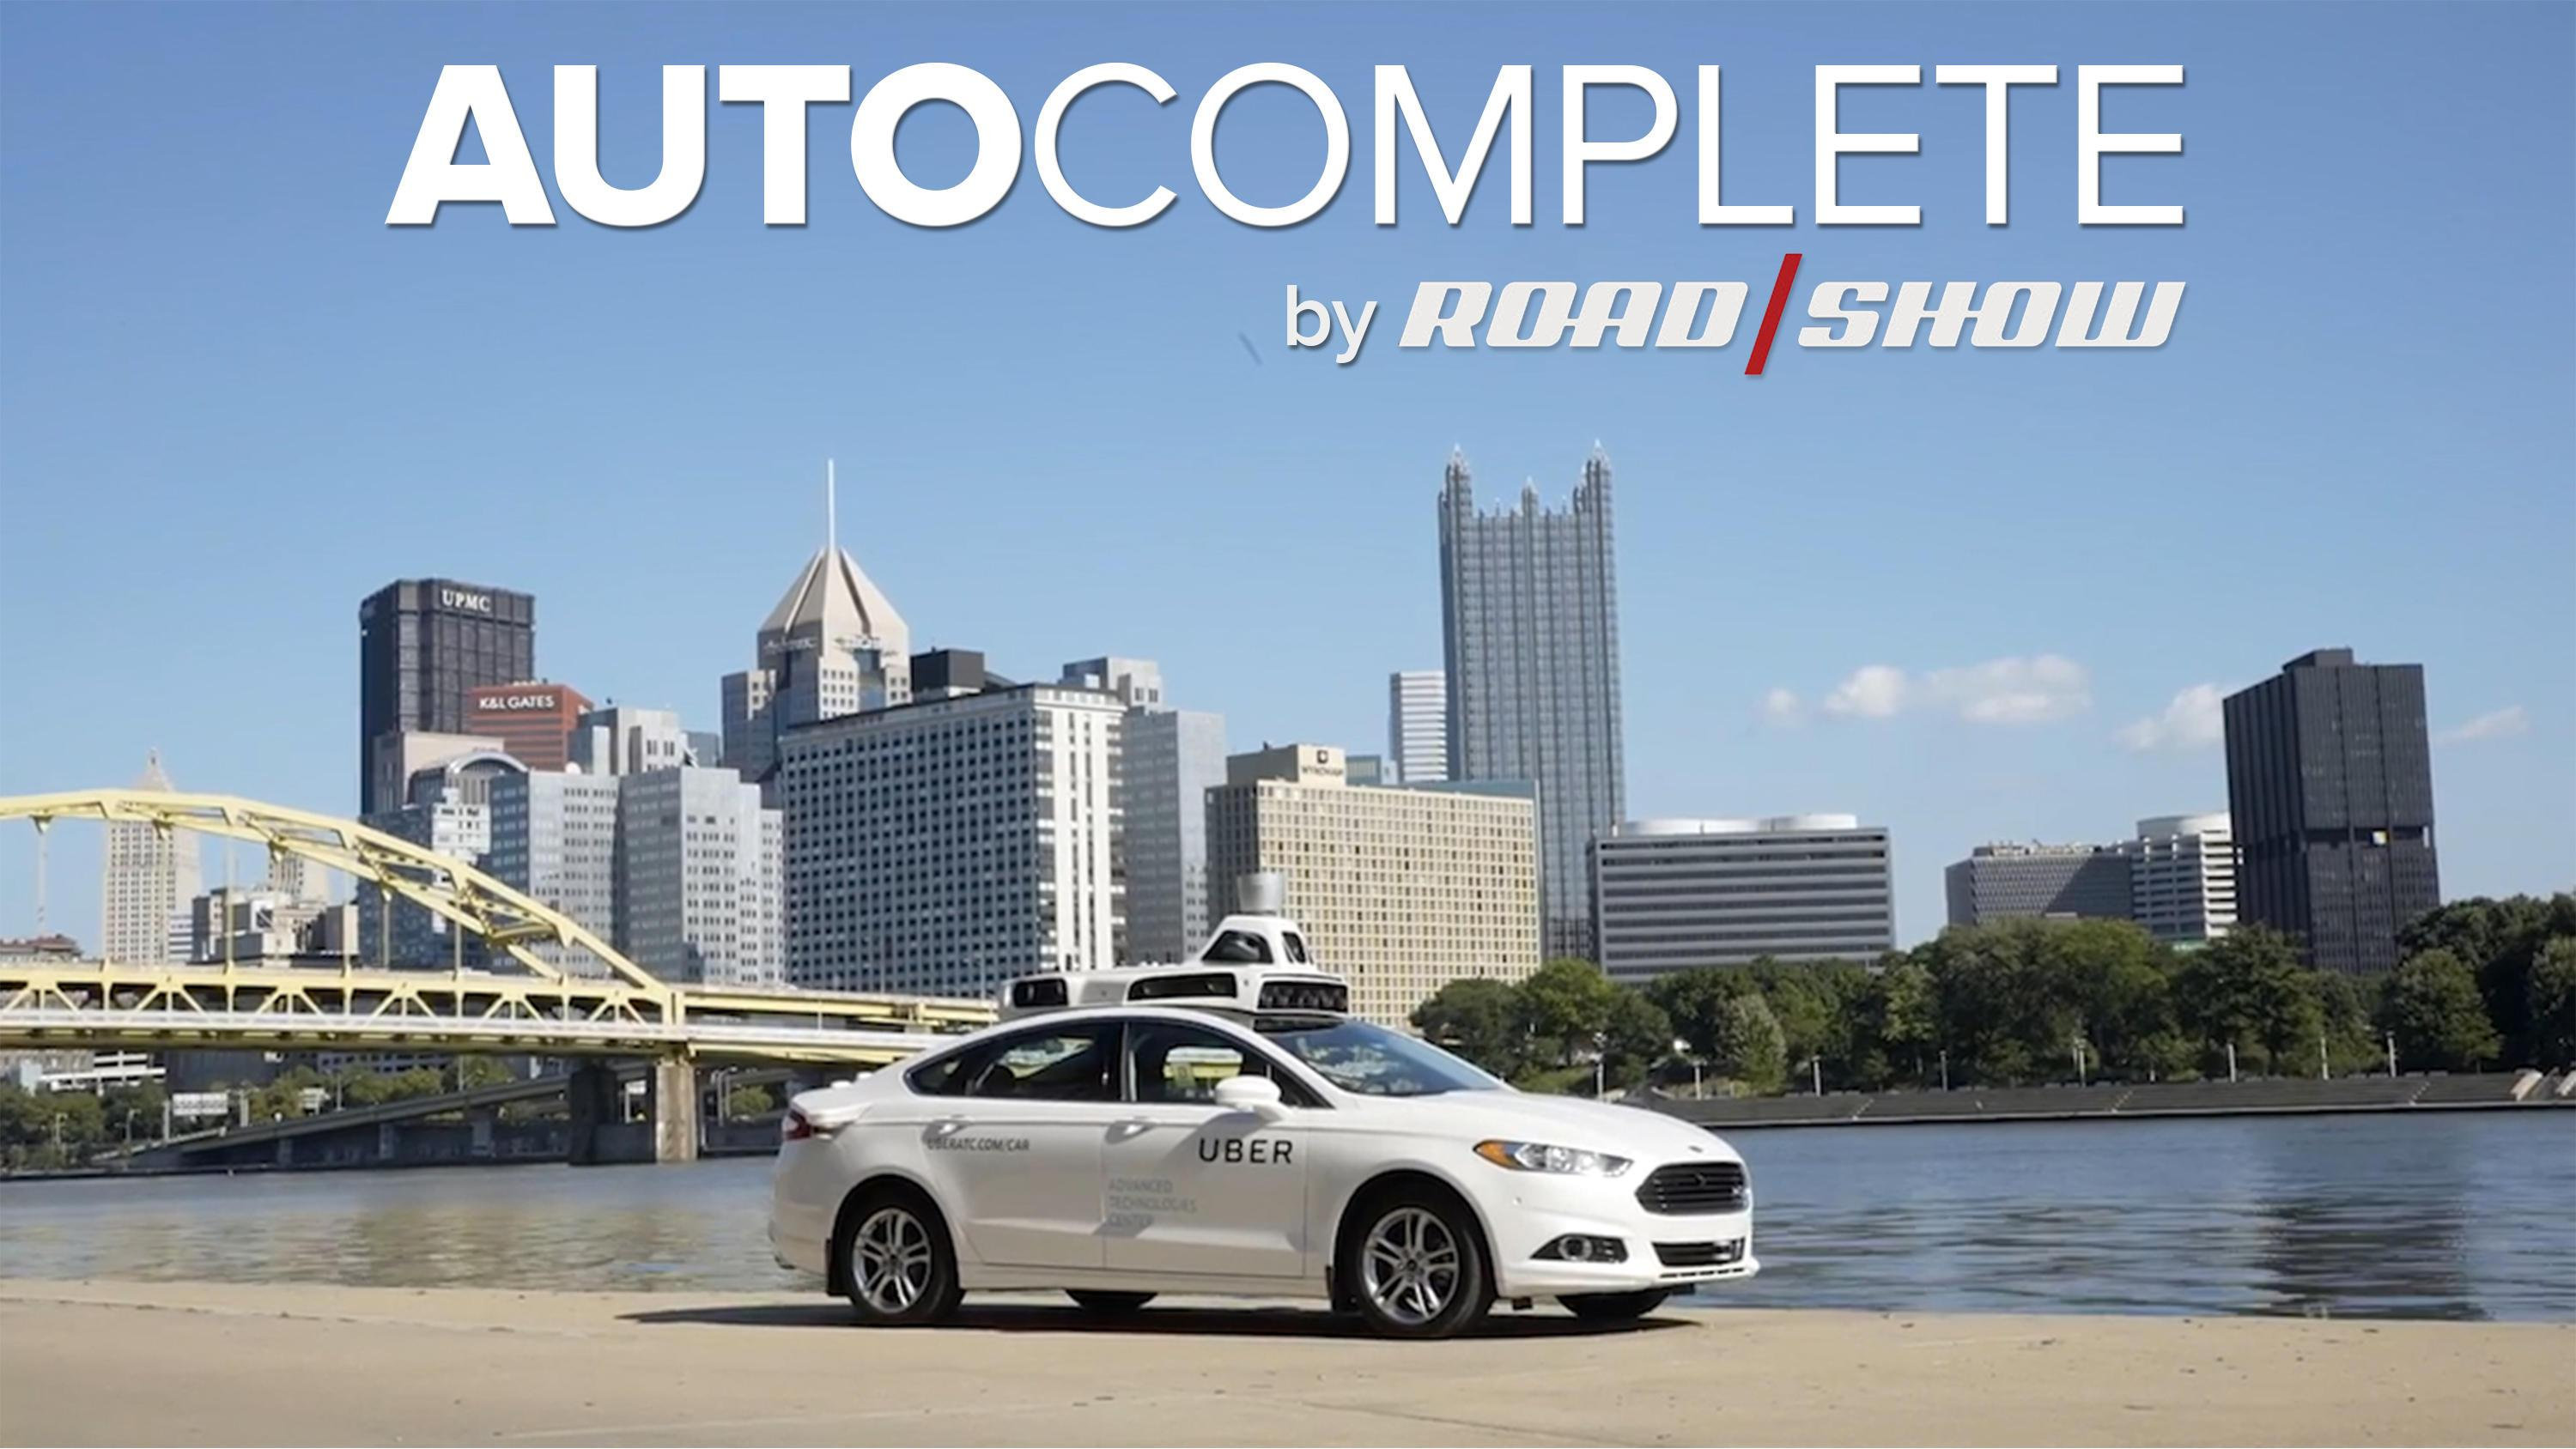 AutoComplete: Uber's Self-Driving Cars Have Arrived in Pittsburgh